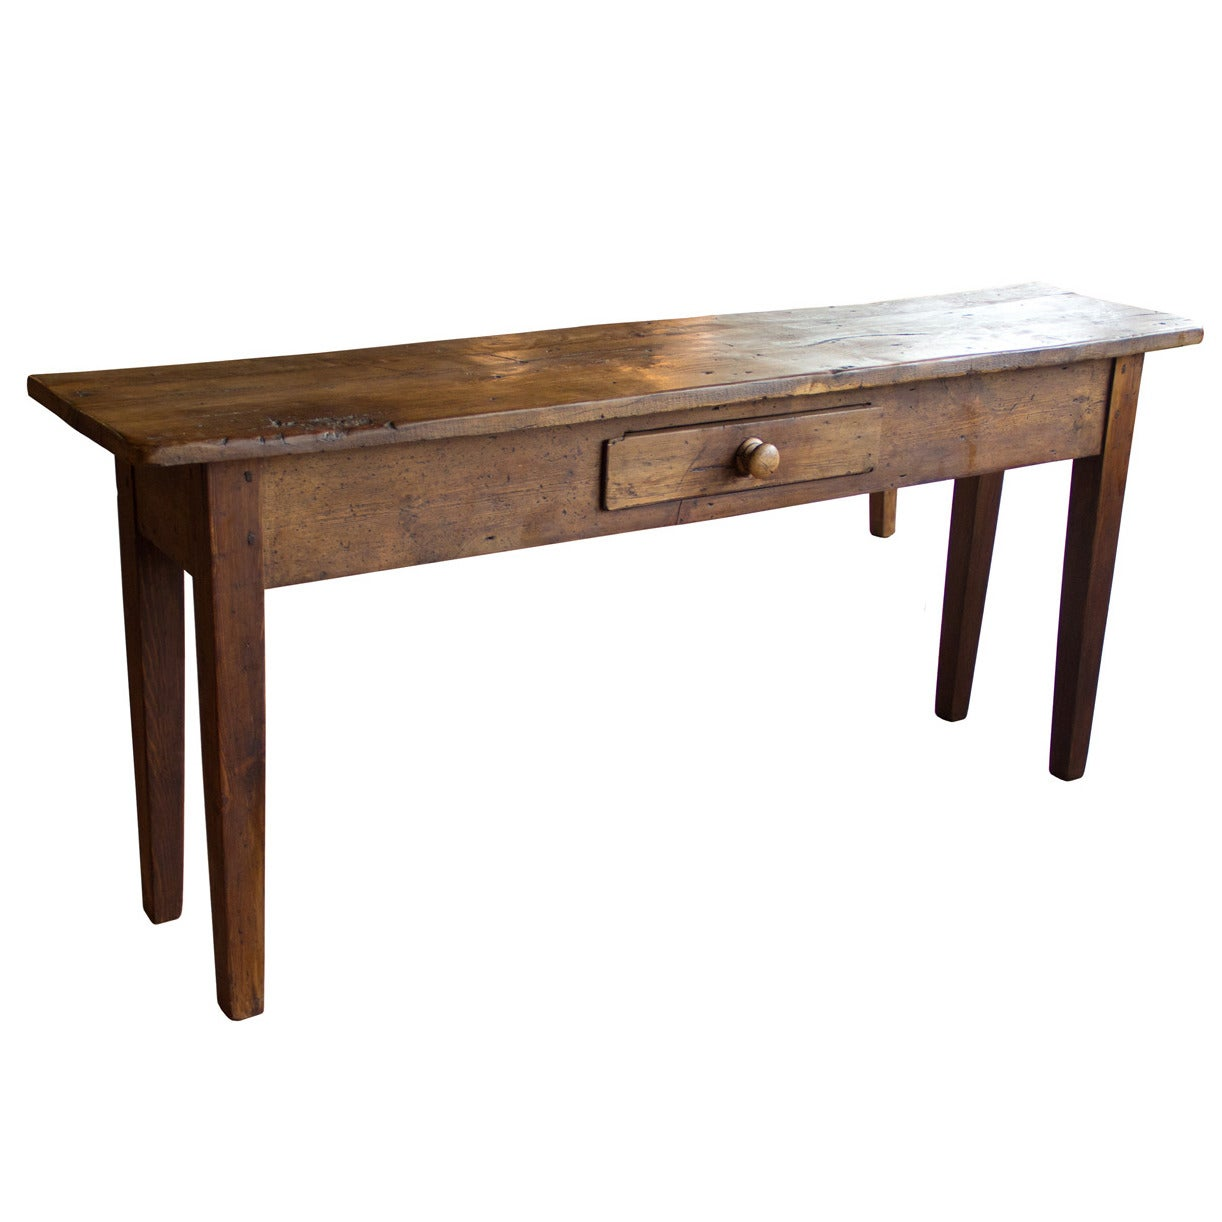 French serving table at 1stdibs for Table quiz hannover